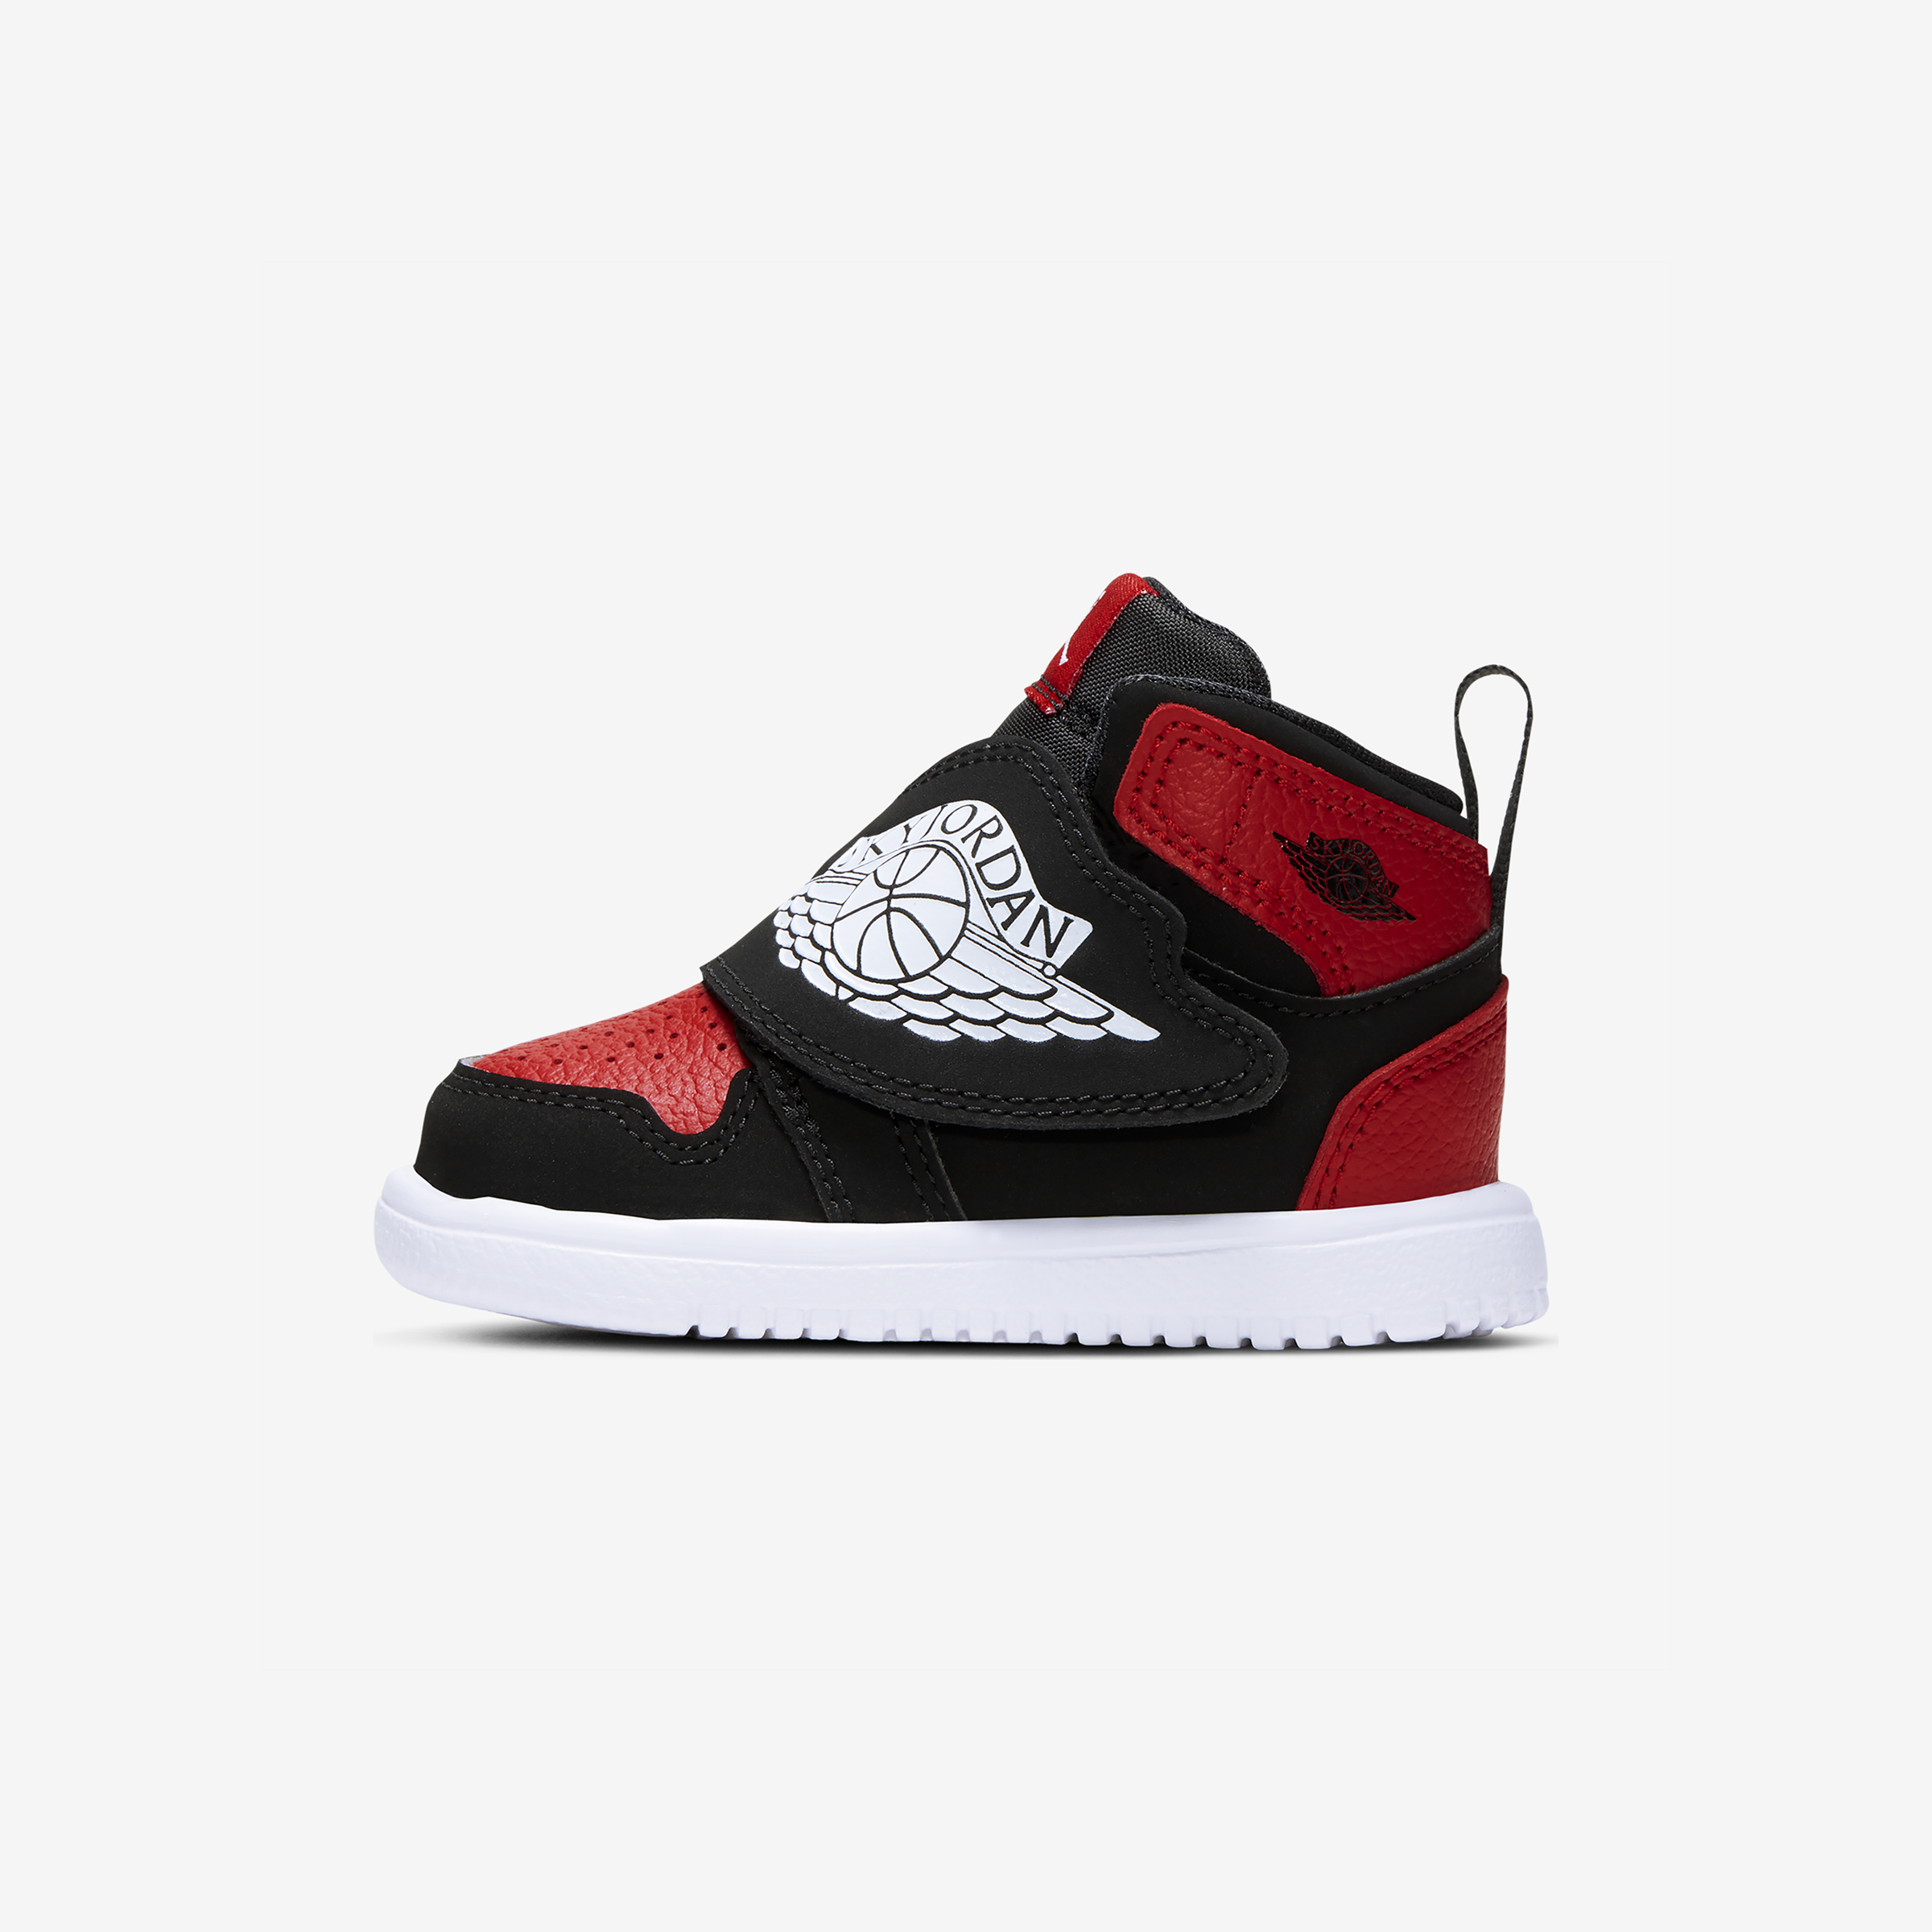 Boy's Toddler Sky Jordan 1